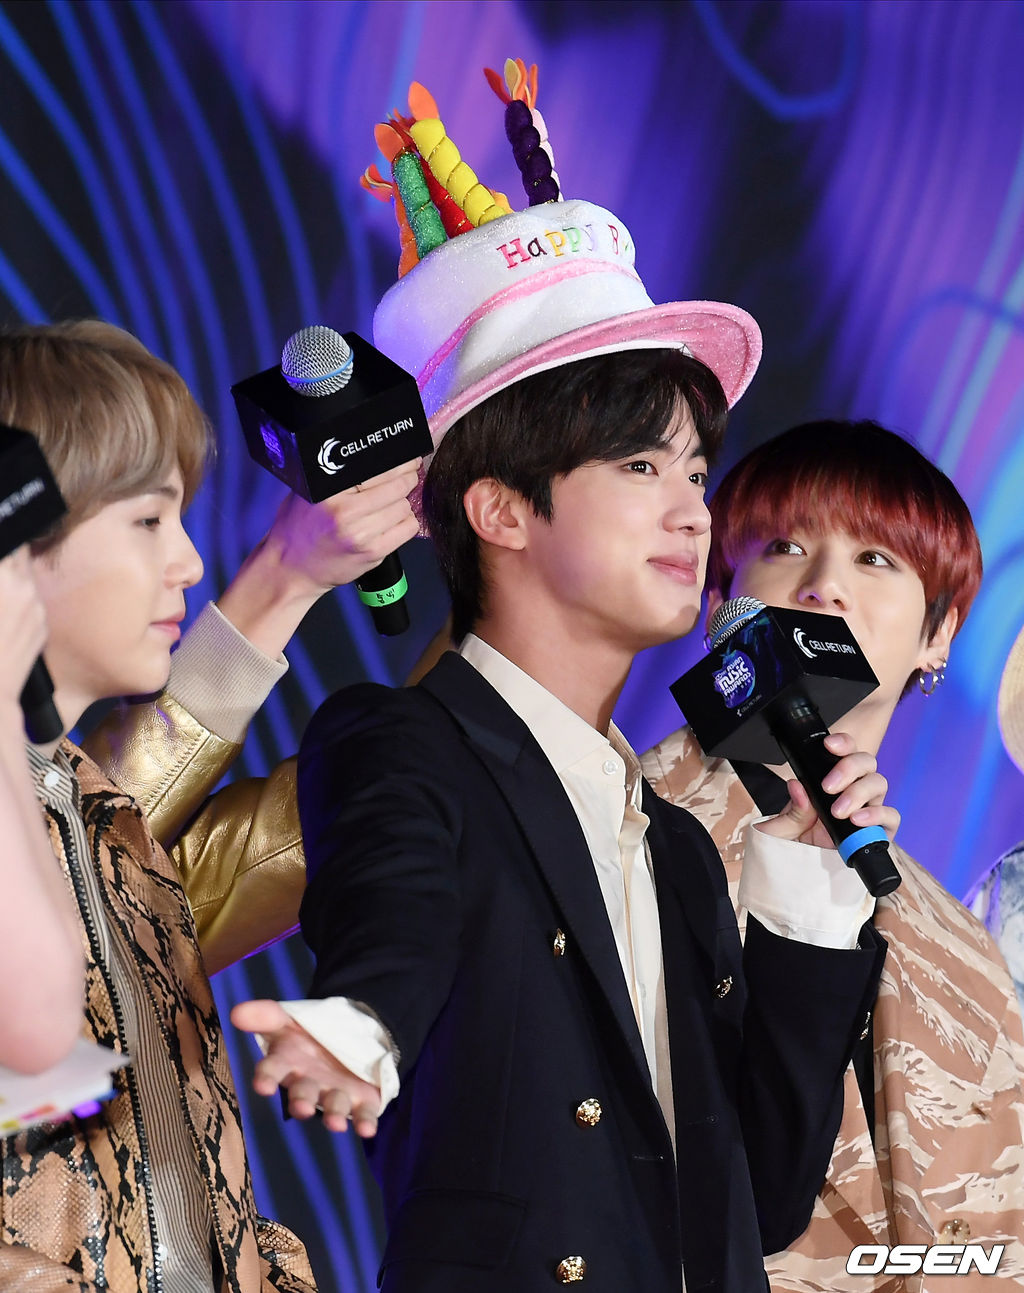 BTS's Jin Passes Birthday Hat To TXT's Soobin's To